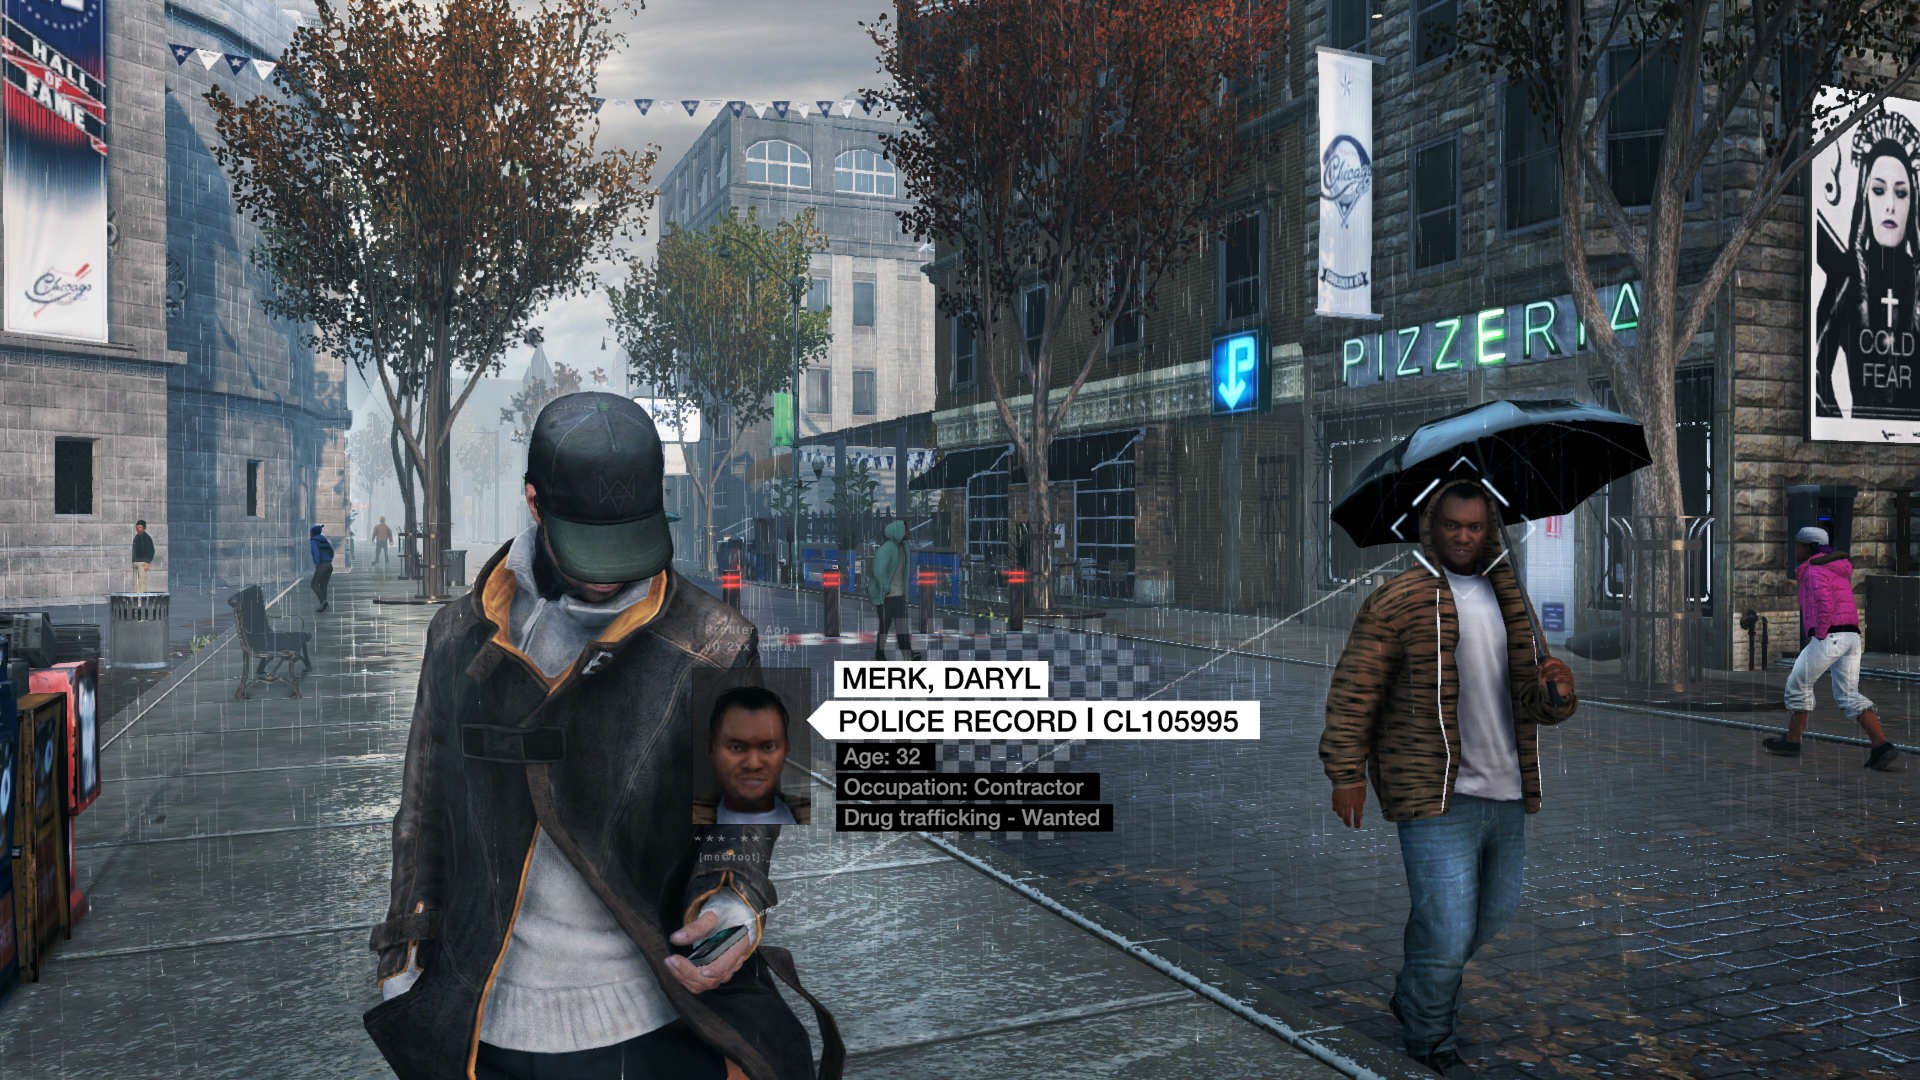 Ubisoft Announce Watch Dogs 2 Will Launch By Next Year 2735292 watch dogs profiler wiiu 1416328393